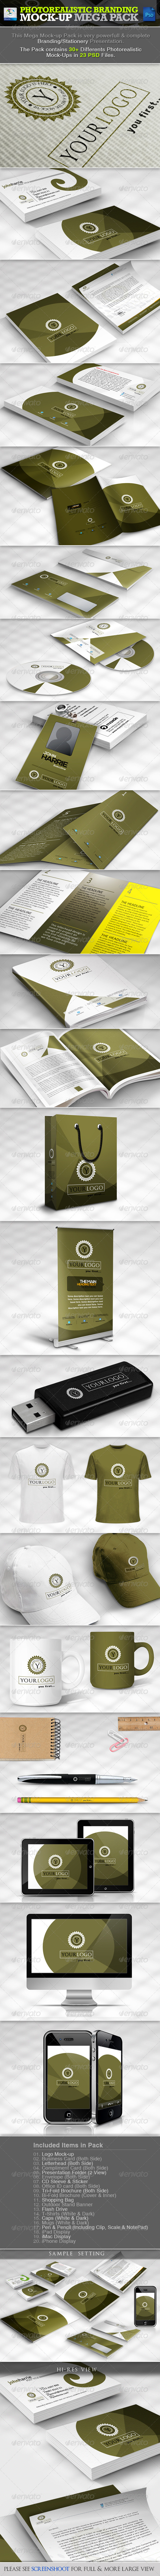 Photorealistic Branding Mock-up Mega Pack - Stationery Print